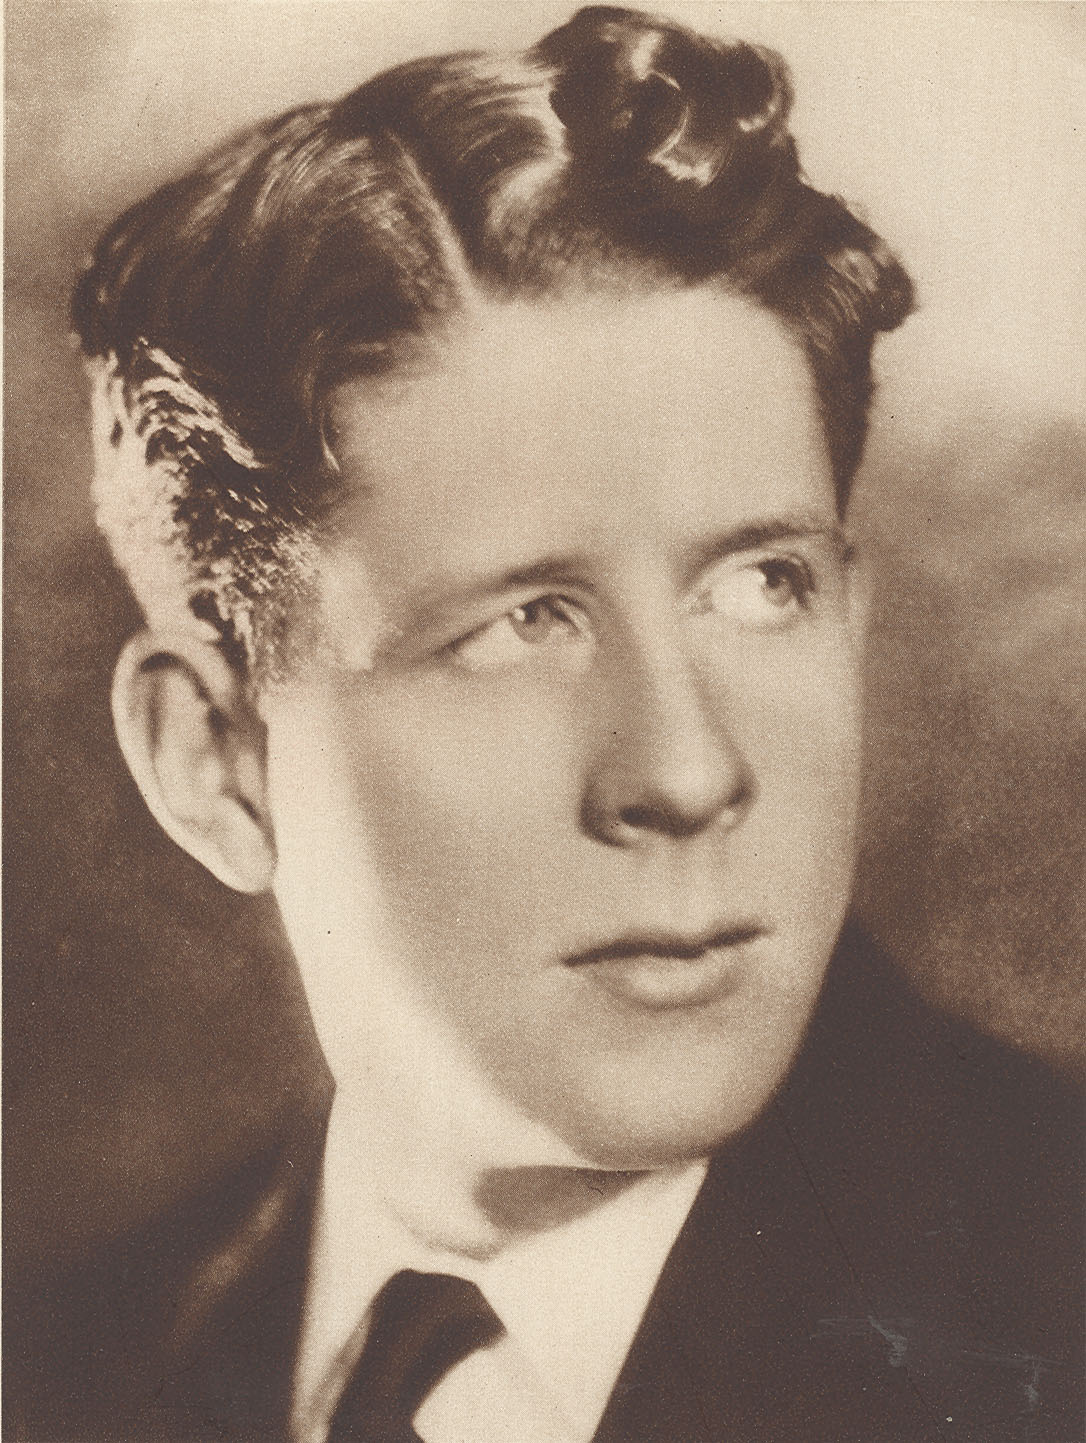 Rudy Vallee young